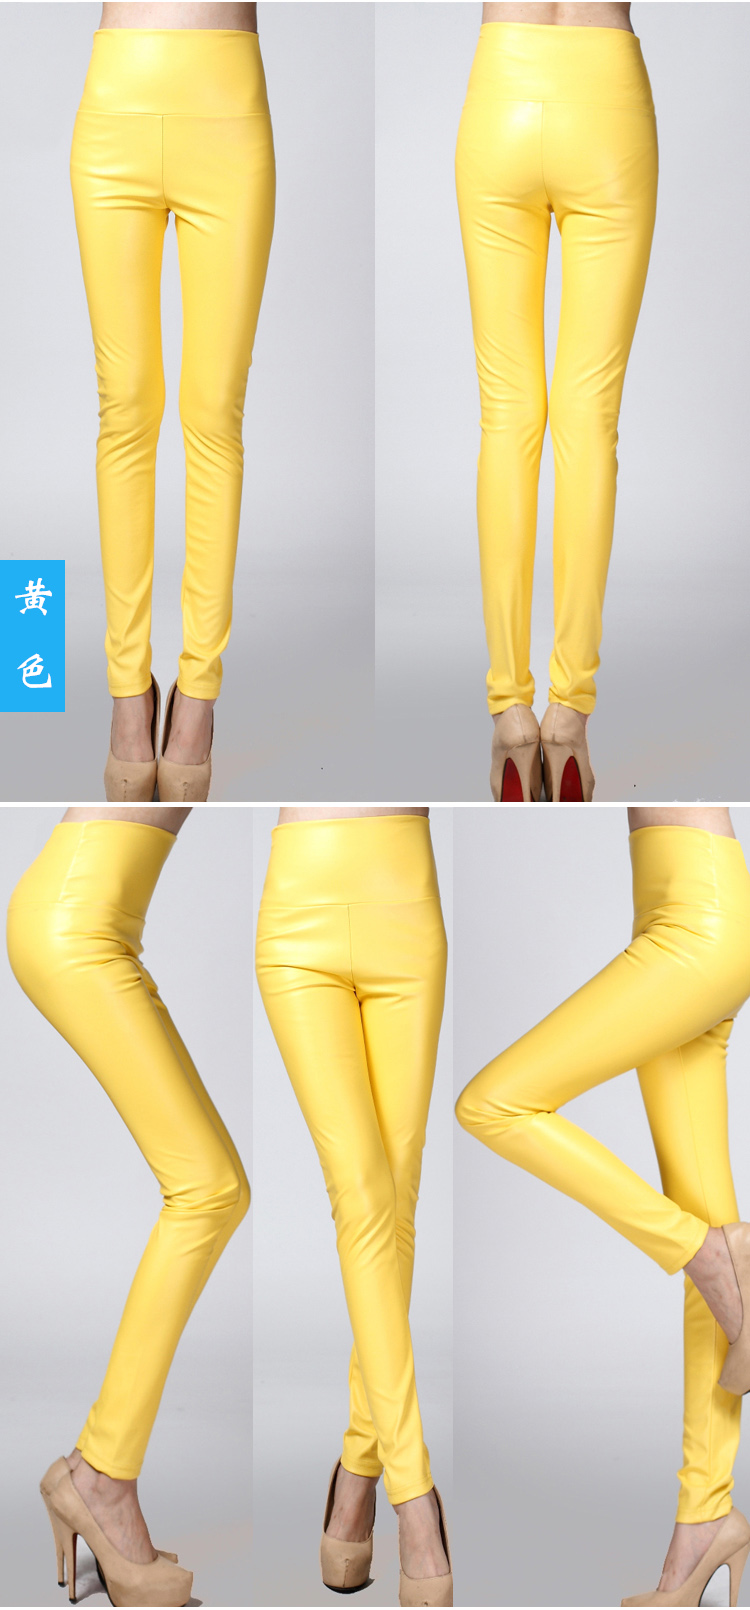 2016 Thicken Winter PU Leather women pants high waist elastic fleece stretch Slim woman pencil pants candy colors